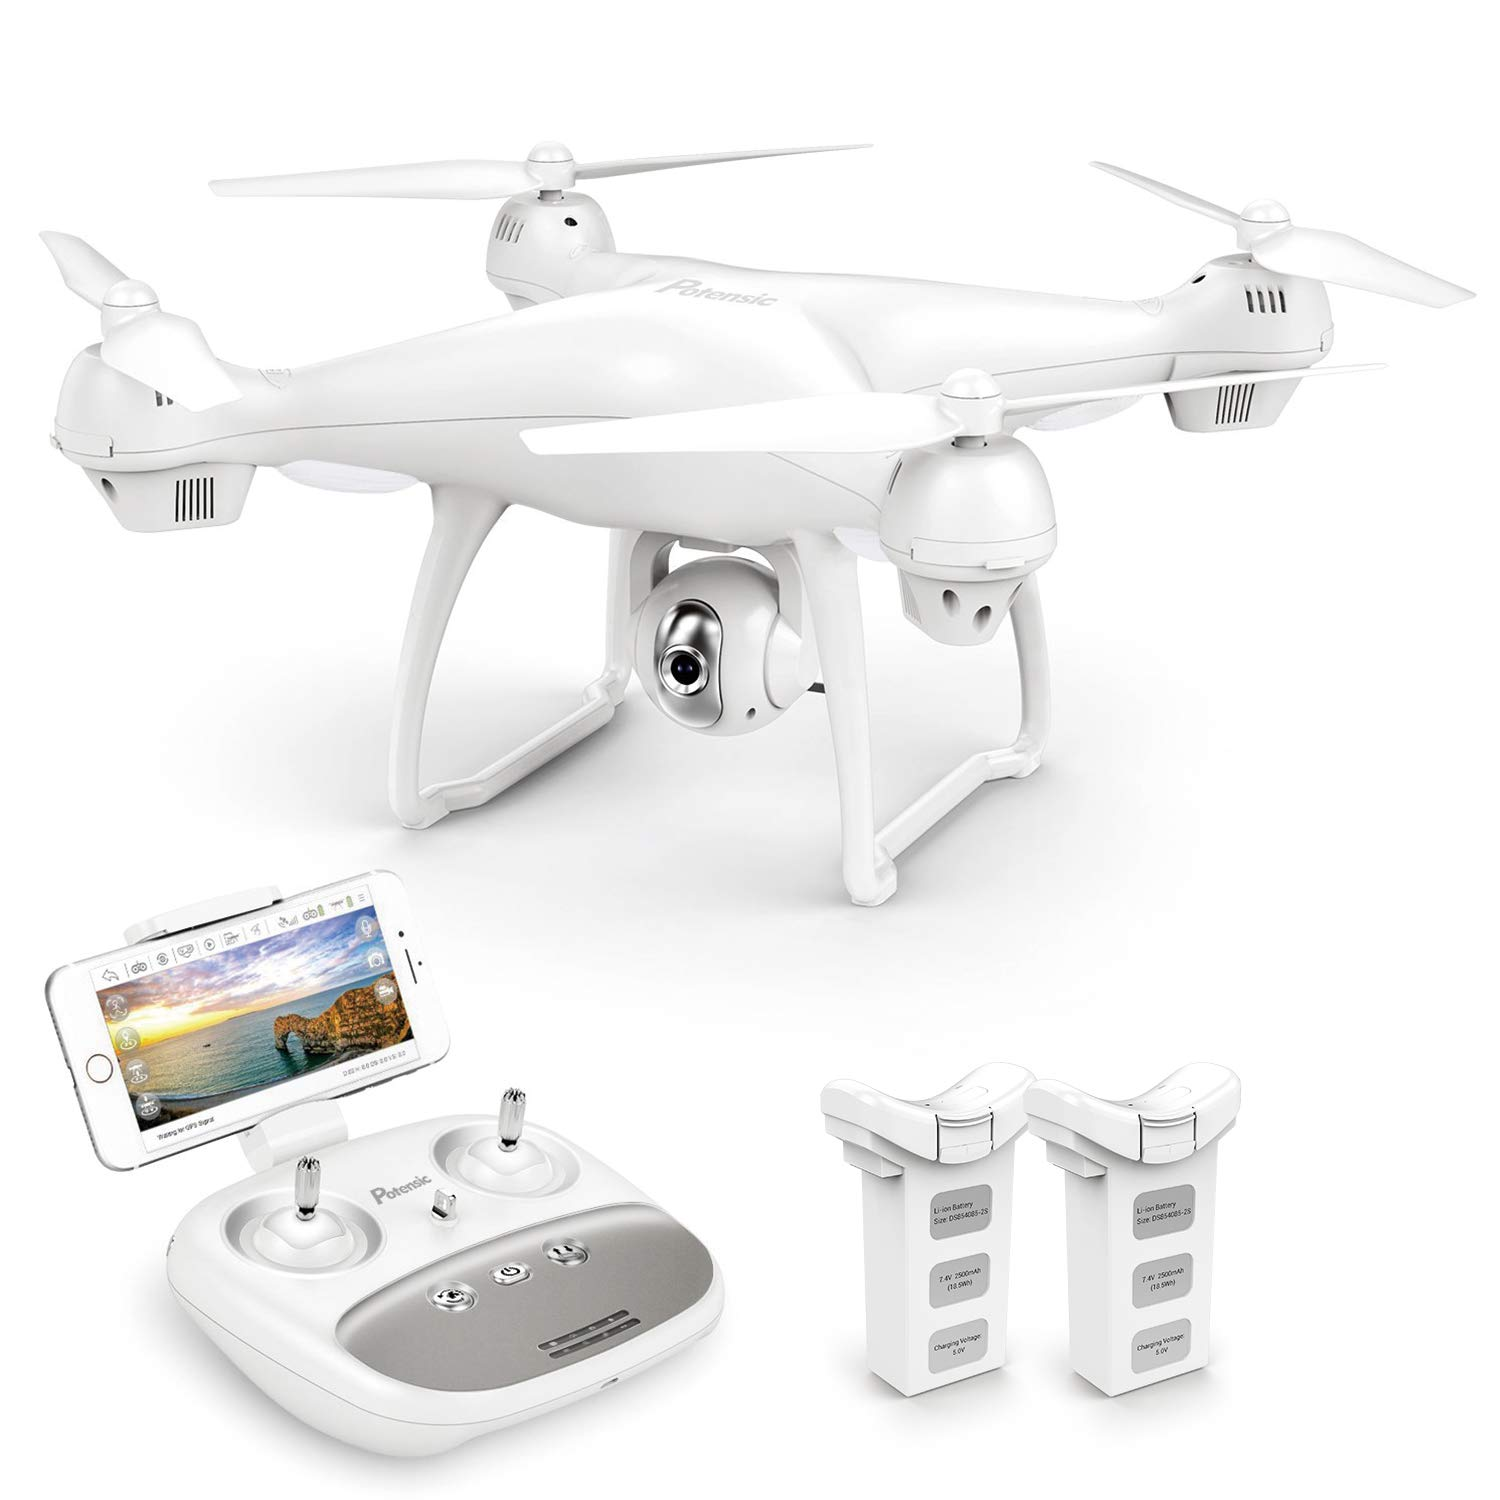 Potensic T35 GPS Drone, RC Quadcopter with 1080P Camera FPV Live Video, Dual GPS Return Home, Follow Me, Altitude Hold, 2500mAh Battery Long Control Range, 2 Batteries by Potensic